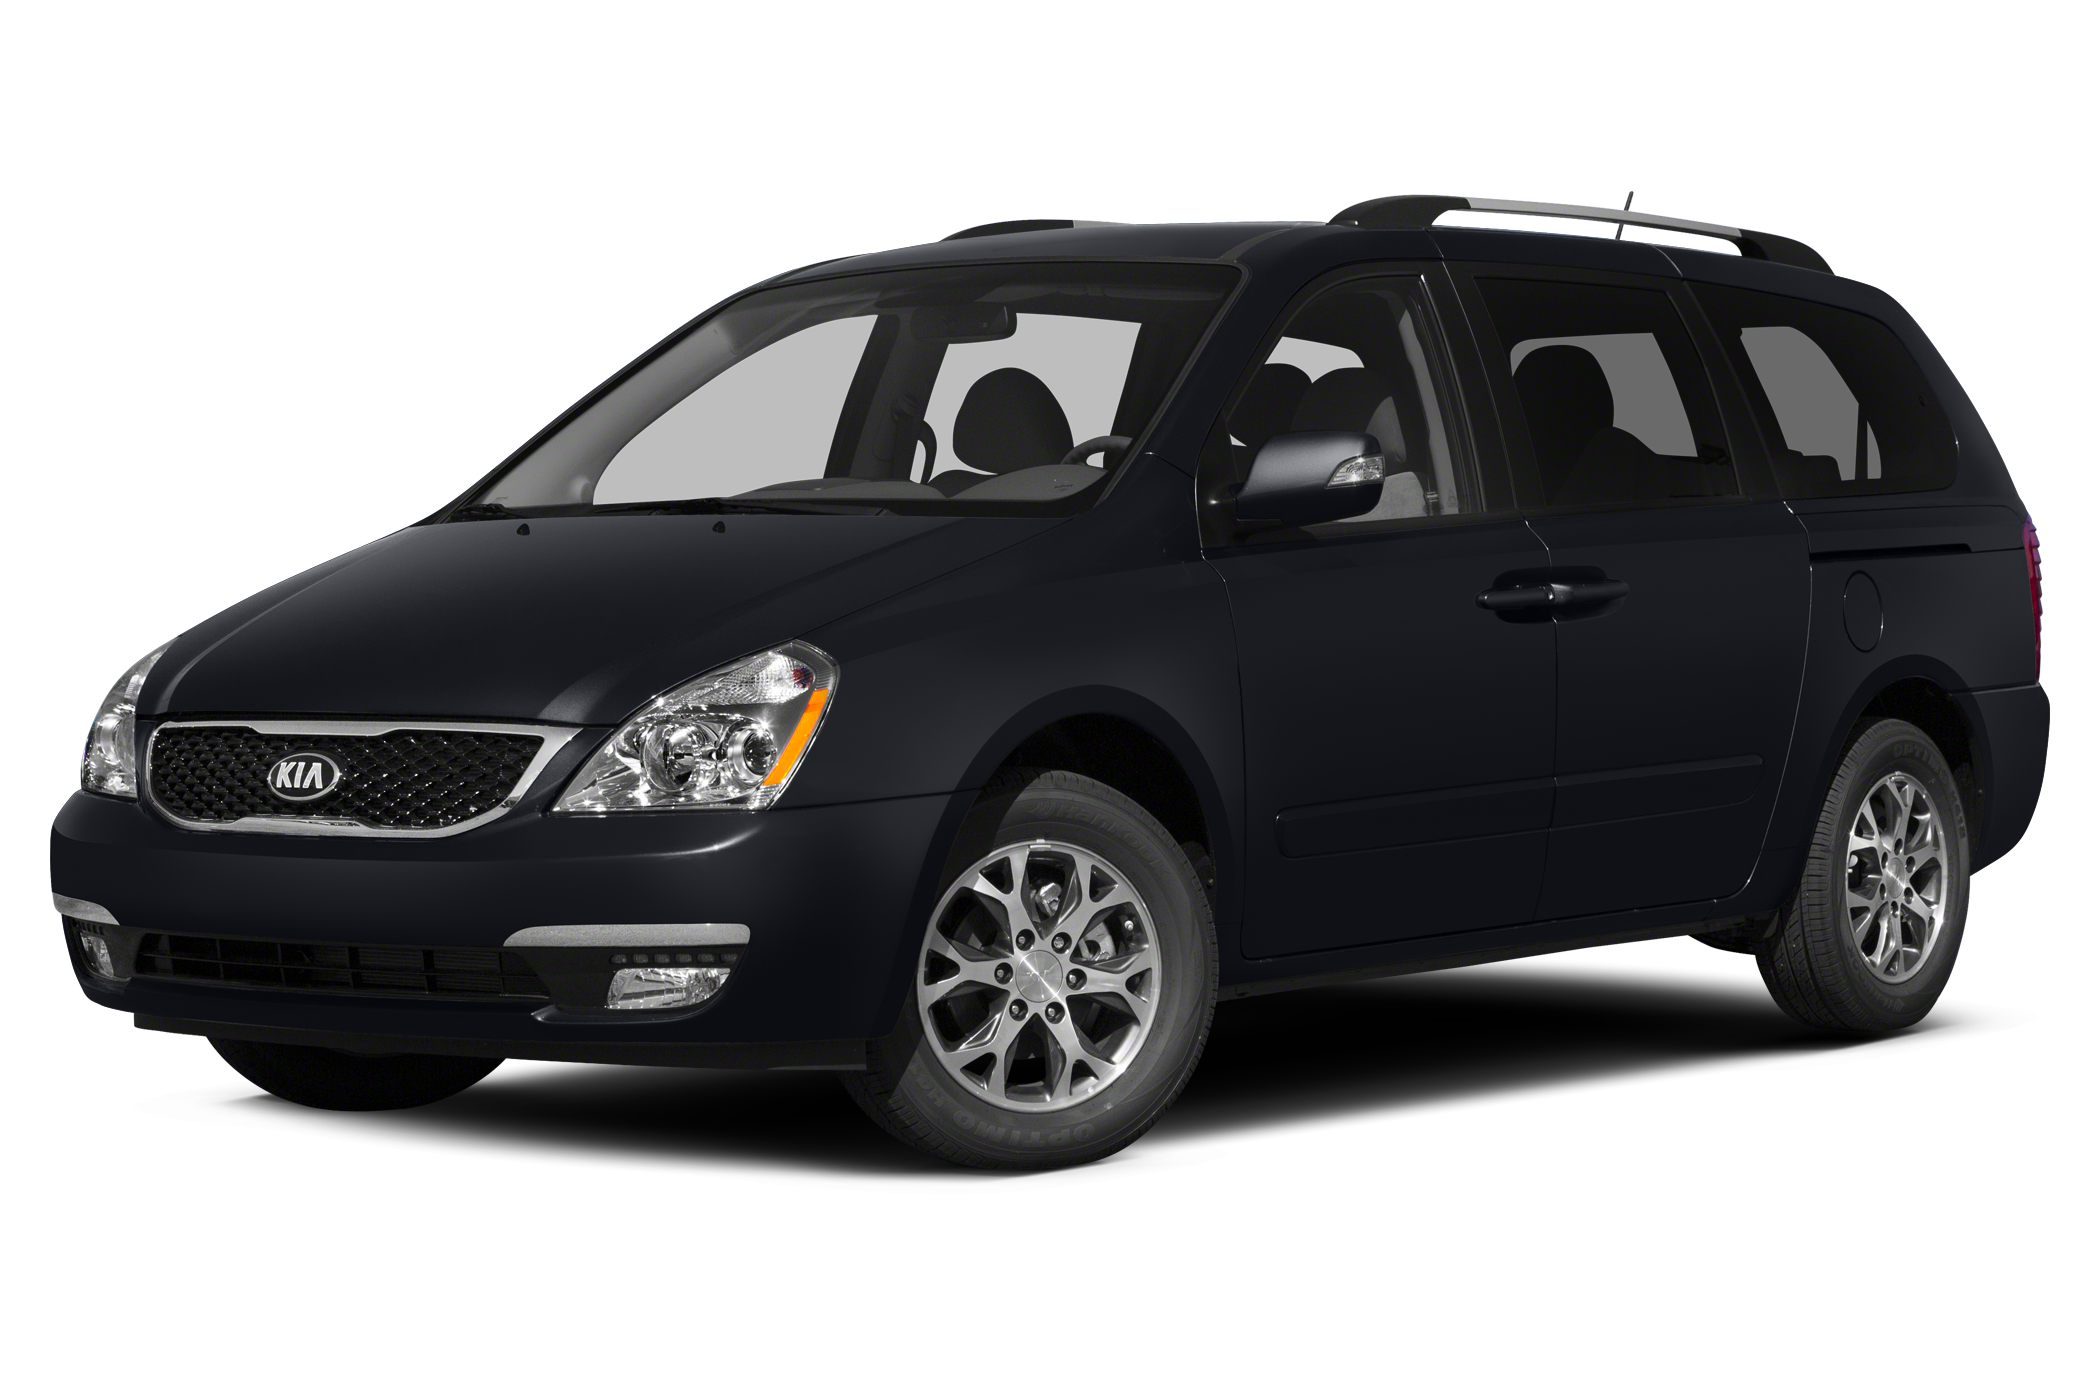 2014 Kia Sedona EX New Arrival CARFAX 1-Owner Priced to sell at 5066 below the market average